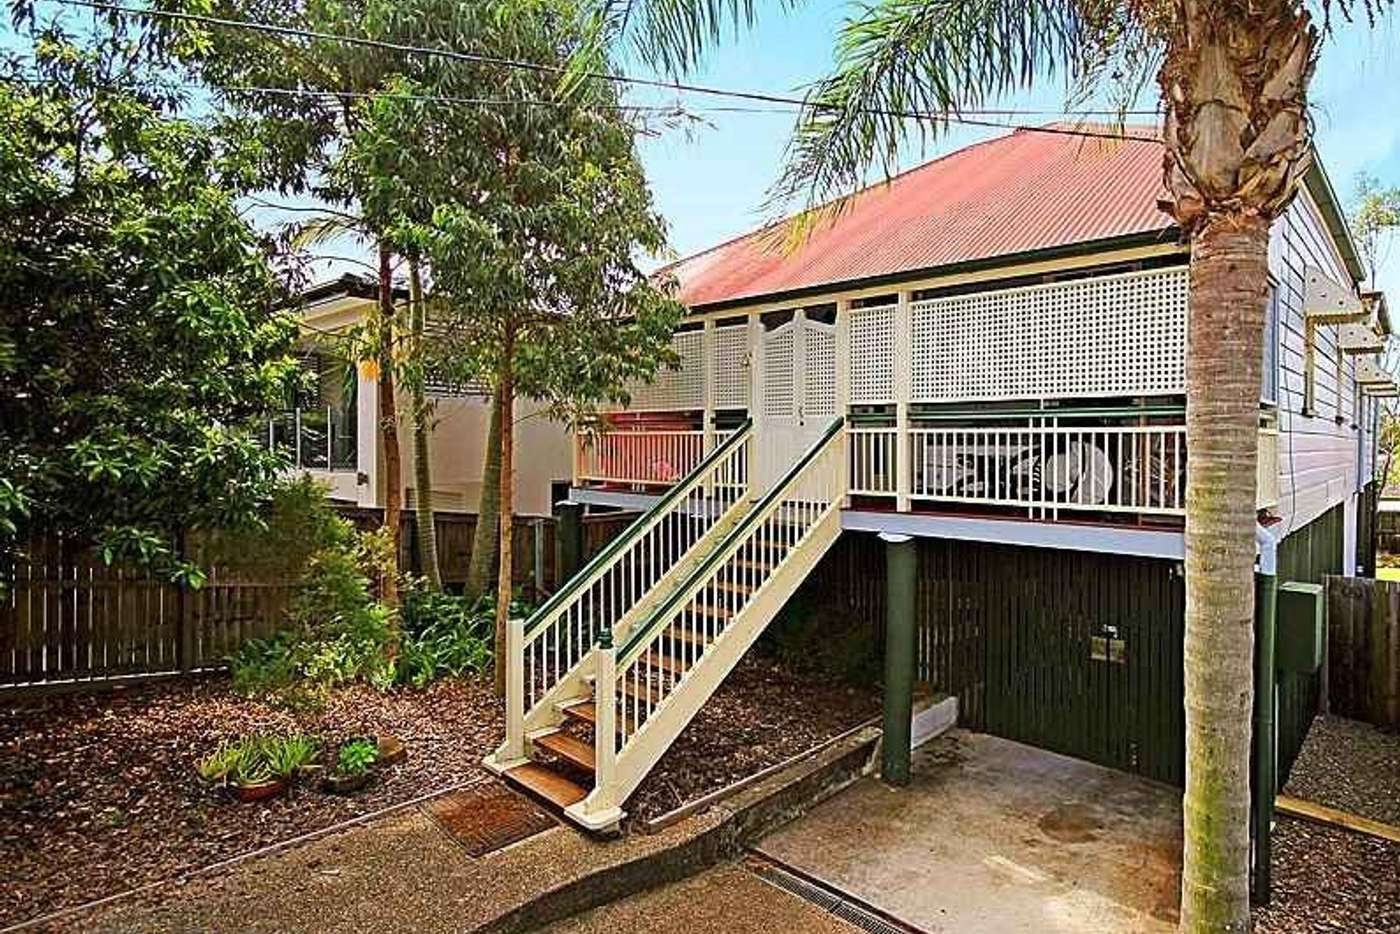 Main view of Homely house listing, 20 Leonard St, Woolloongabba QLD 4102